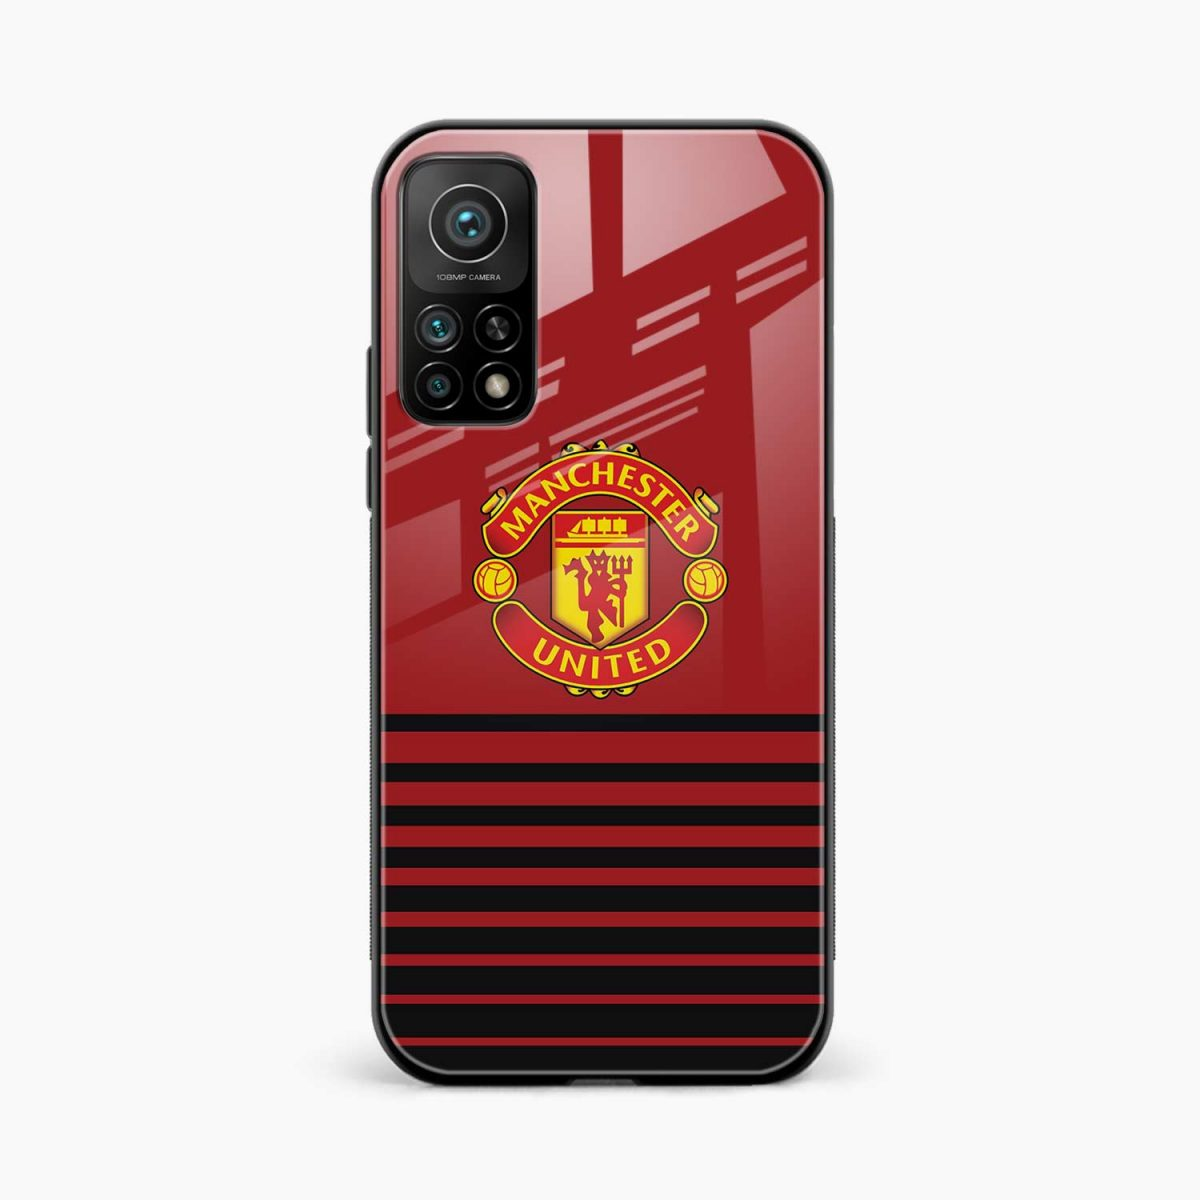 manchester united xiaomi mi 10t pro back cover front view